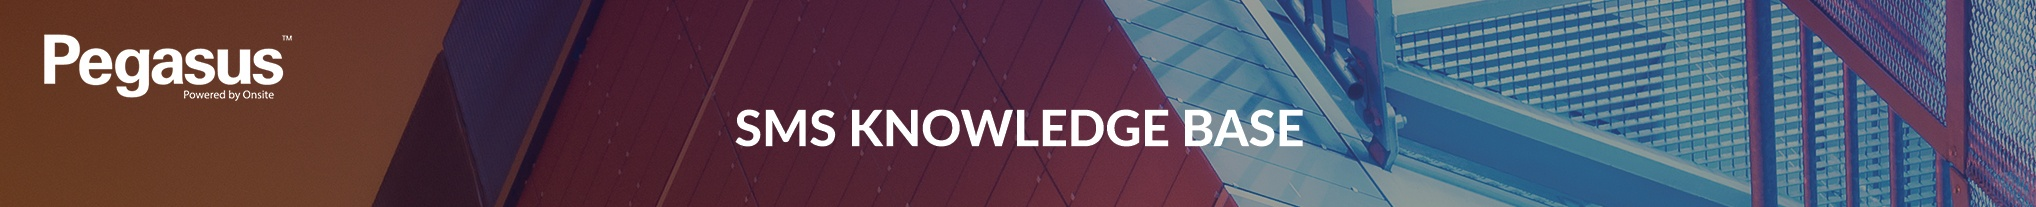 SMS Knowledge base header.jpg